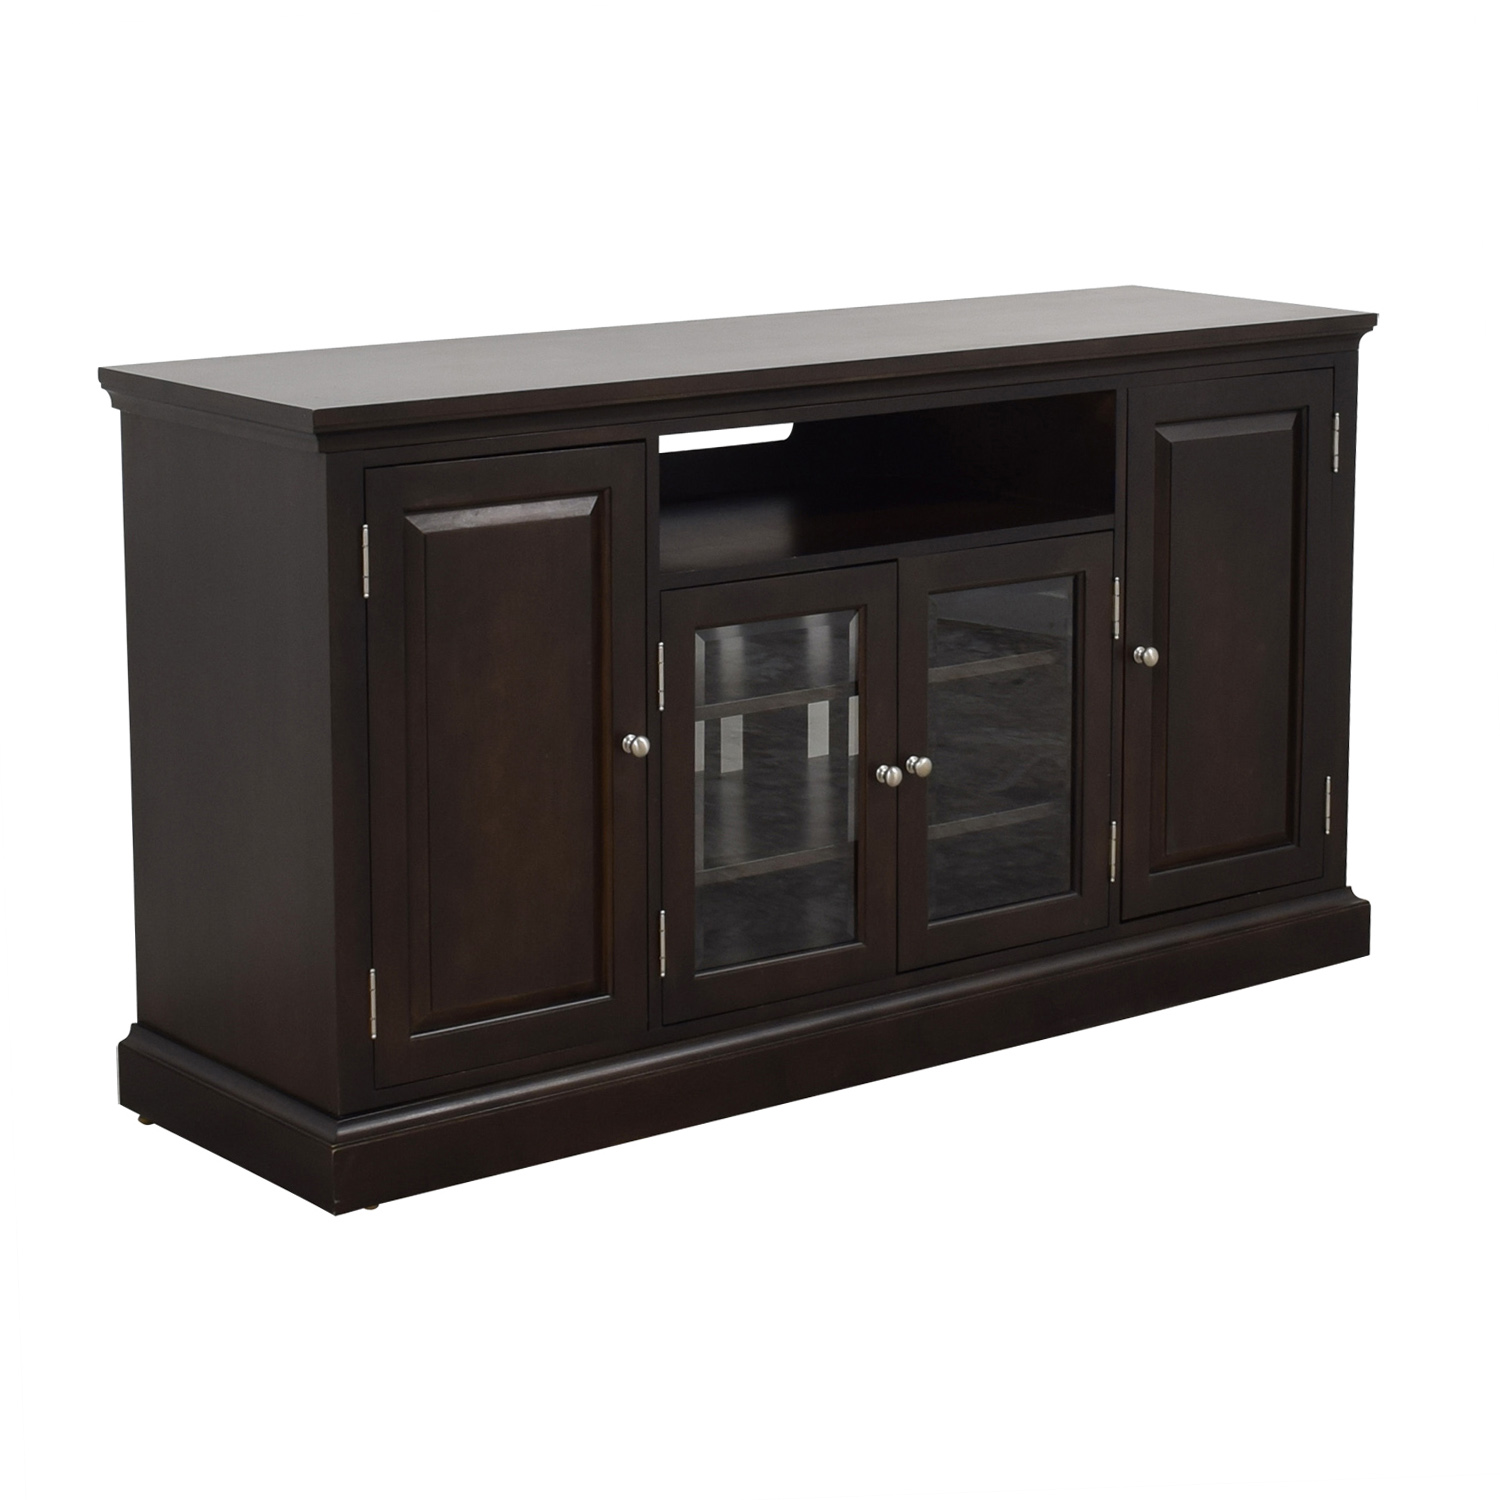 Ethan Allen Ethan Allen Wood and Glass Media Cabinet used